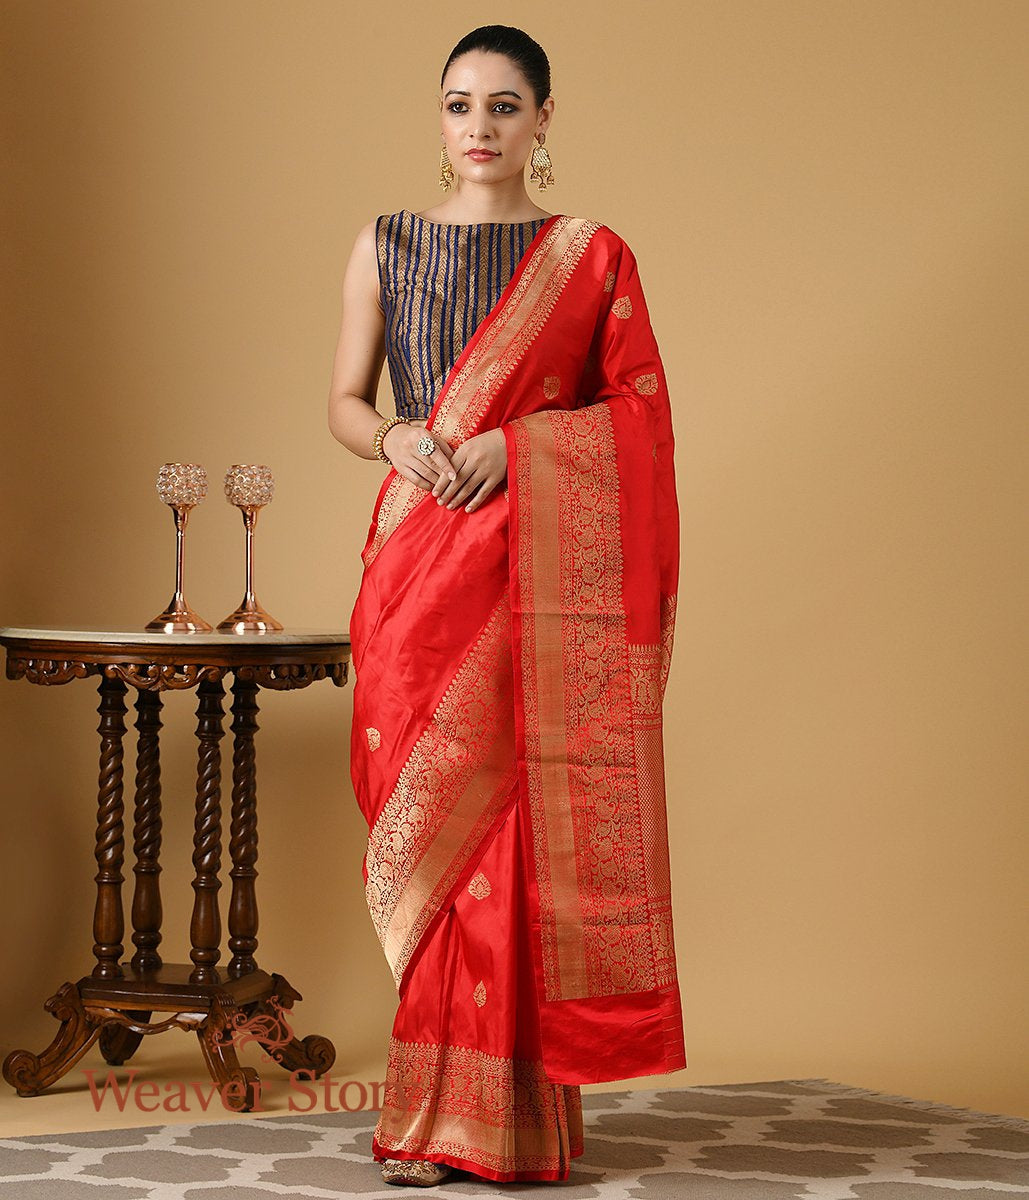 Handwoven Red Katan Silk Saree with a Gold Zari Border